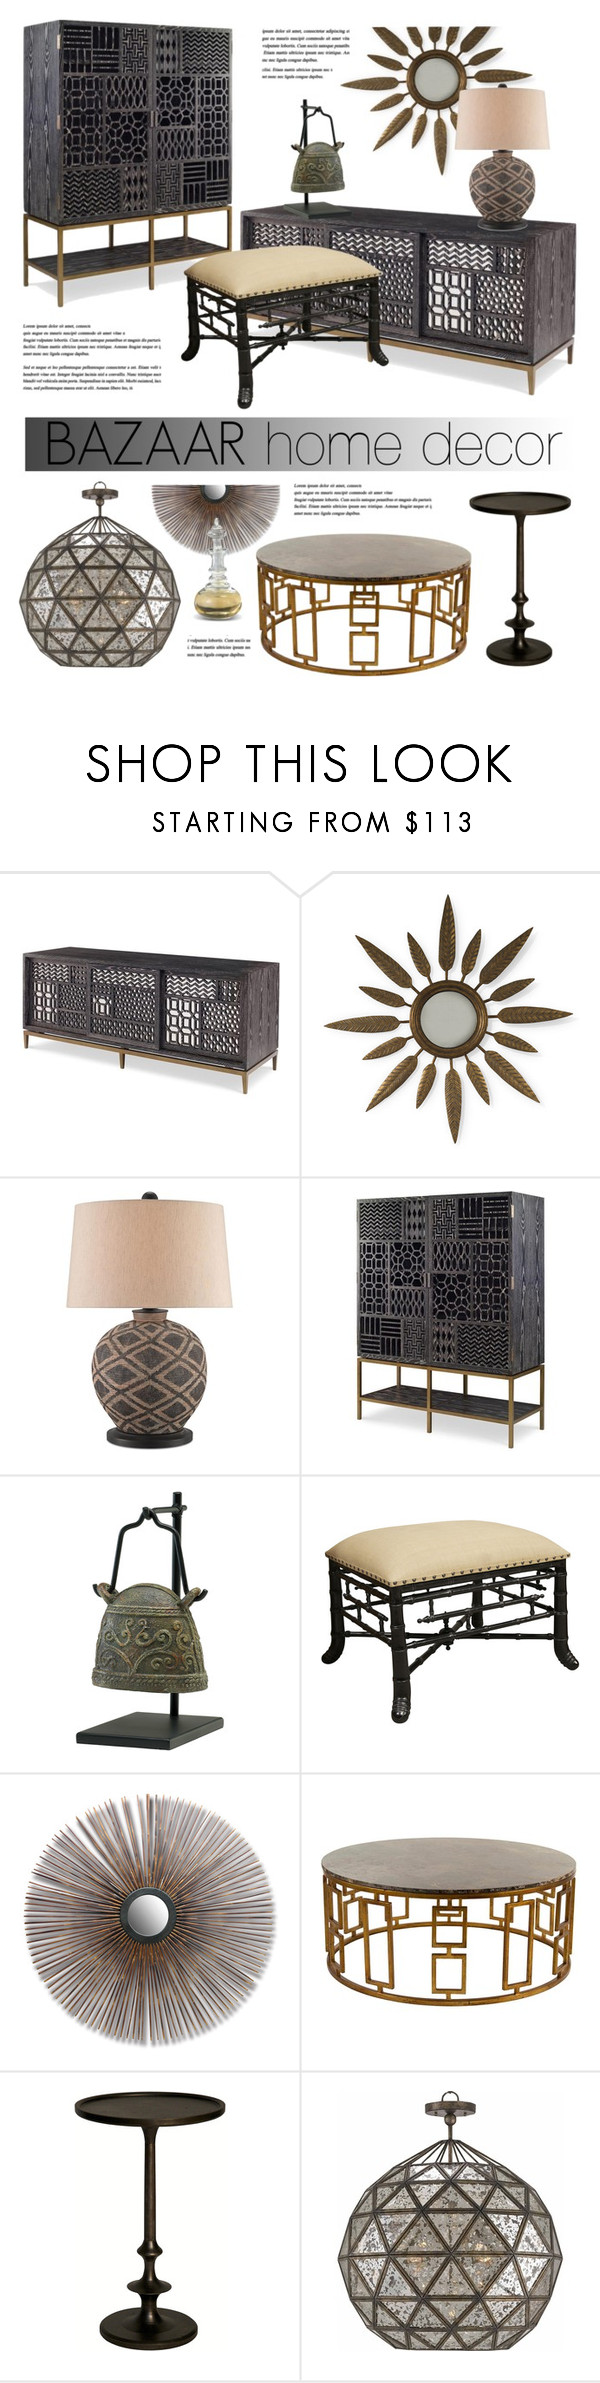 Bazaar Interior By Kathykuohome On Polyvore Featuring Interior, Interiors,  Interior Design, Home,